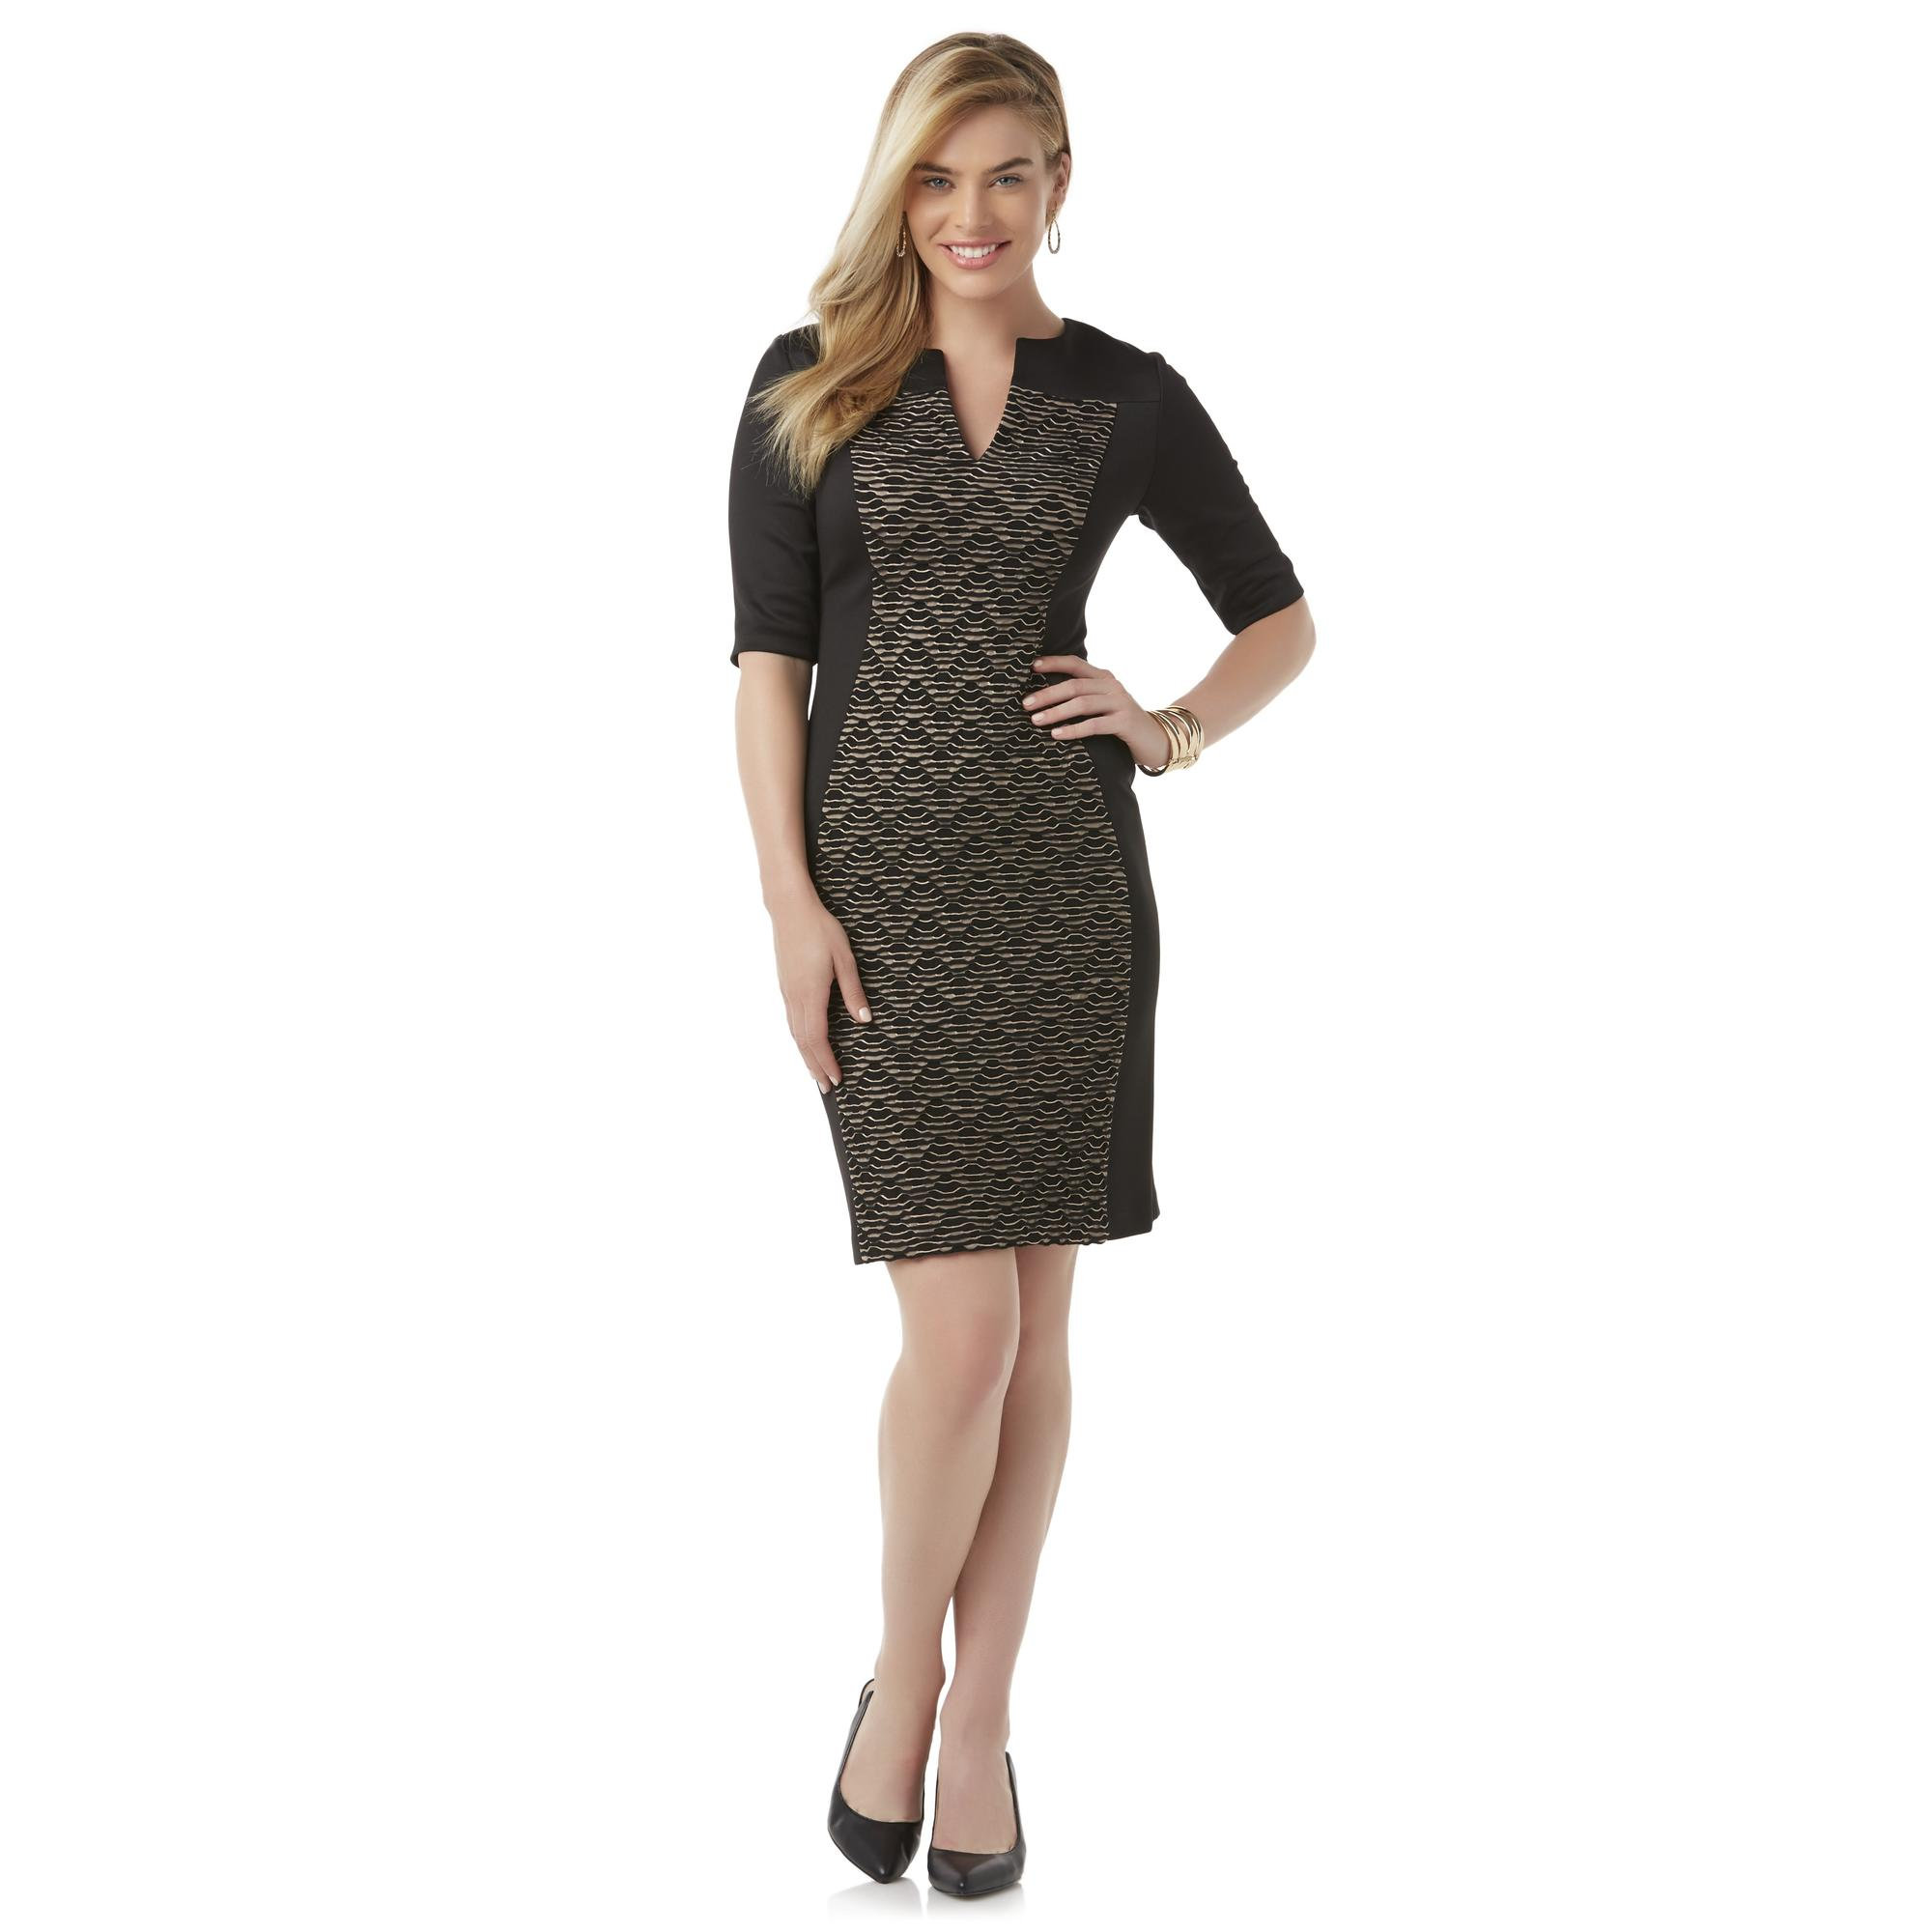 Kmart online womens clothing